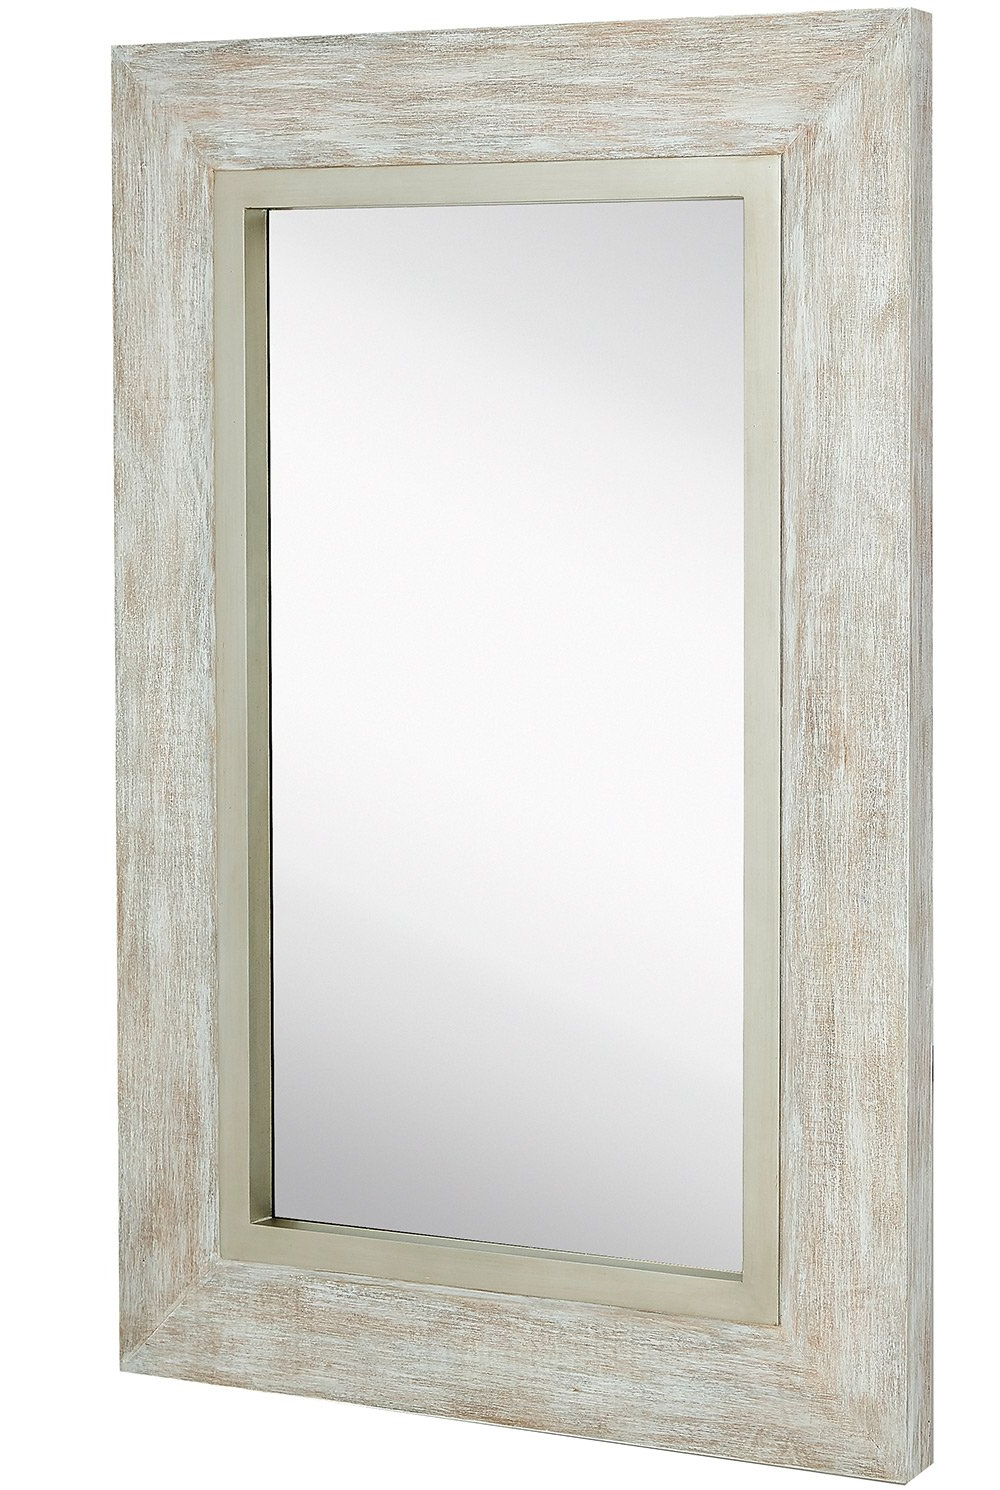 Most Recent Hamilton Hills Large White Washed Framed Mirror (View 14 of 20)